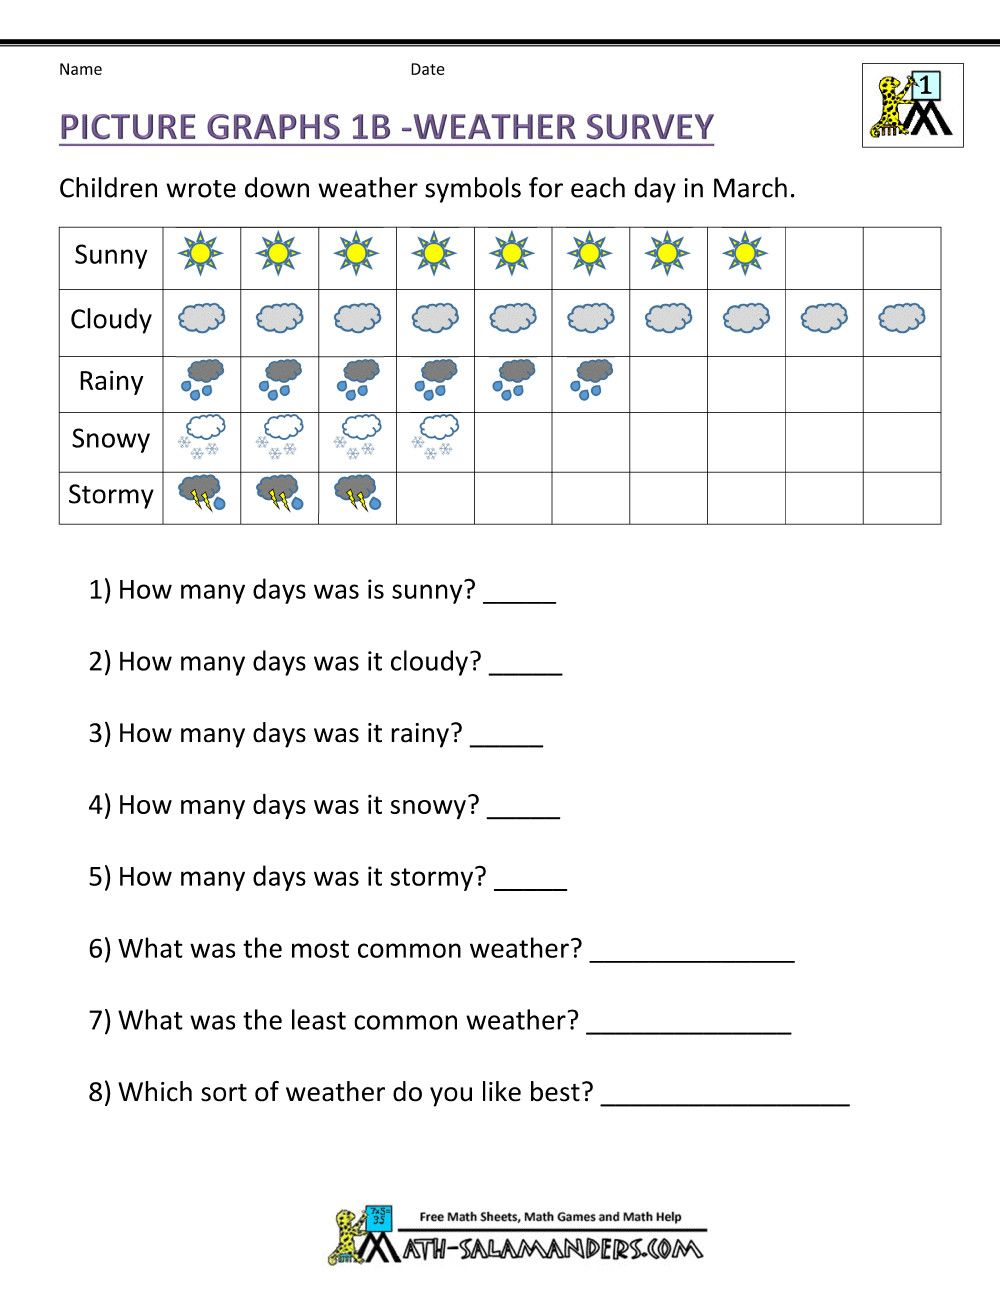 Reading Charts And Graphs Worksheets In 2020 Reading Graphs Graphing First Grade Graphing Worksheets